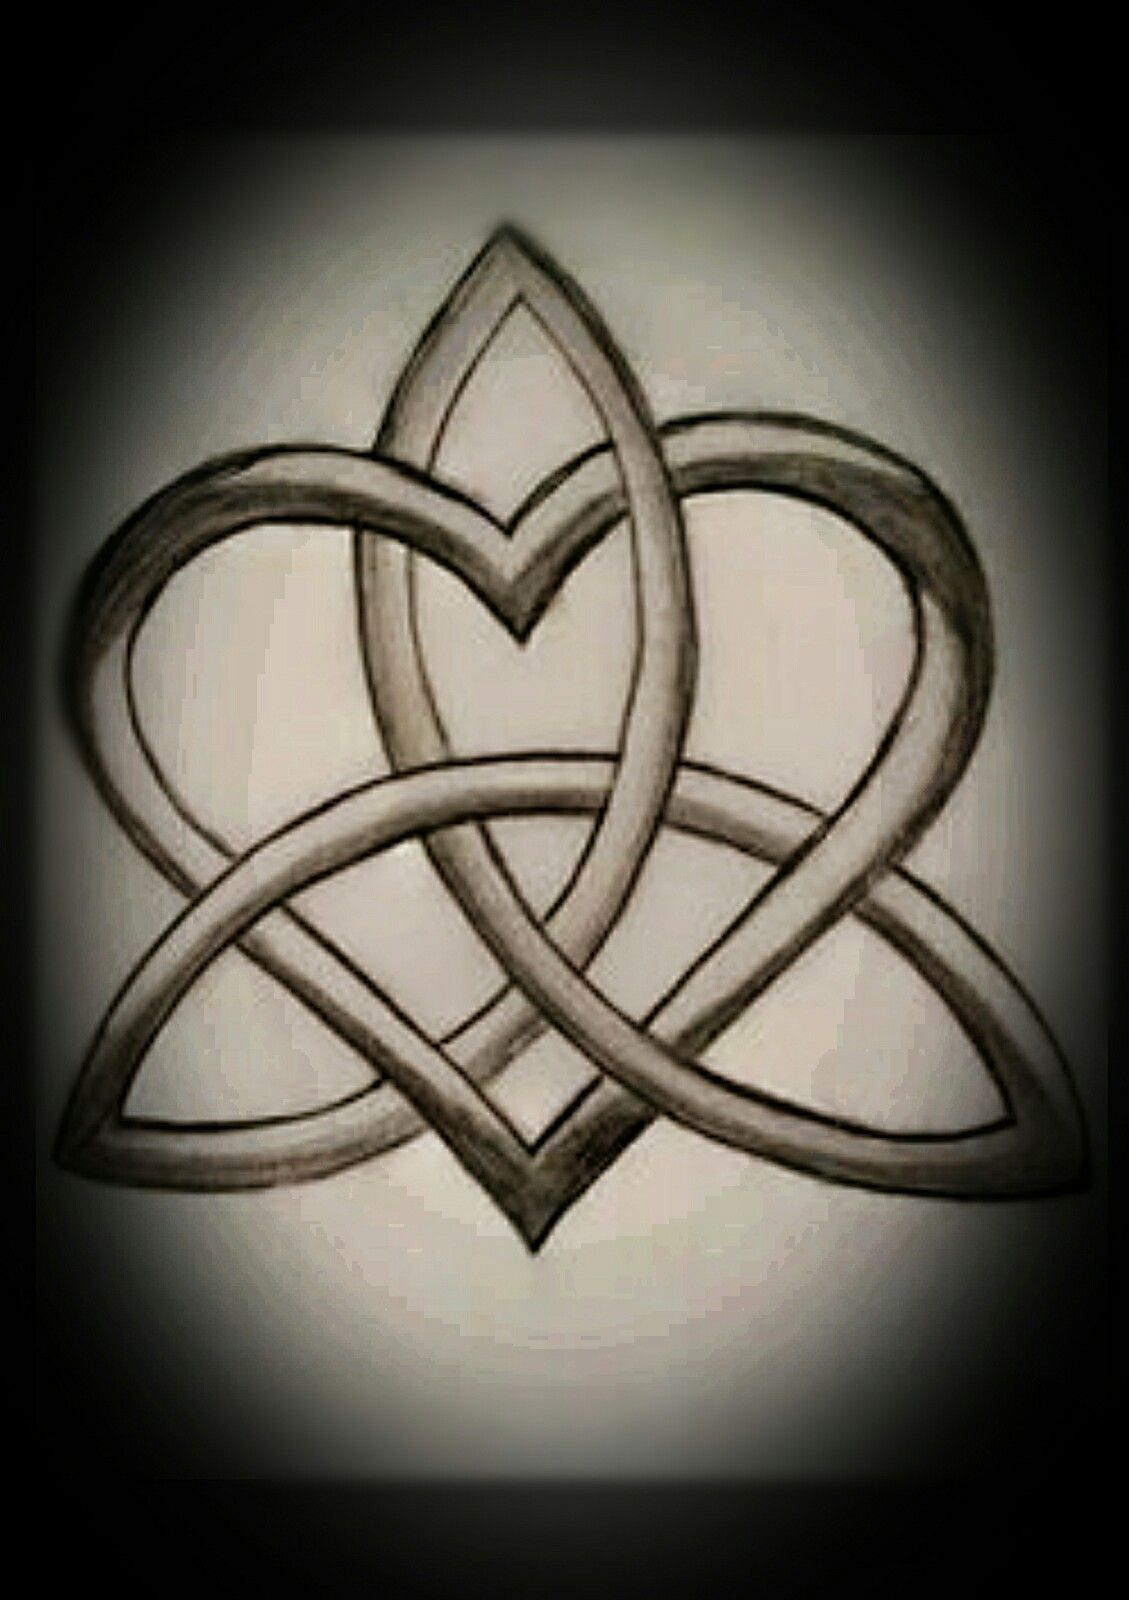 Pin By Vickie Carroll On Anything Witchy Ish Celtic Knot Tattoo Celtic Heart Tattoo Celtic Symbols